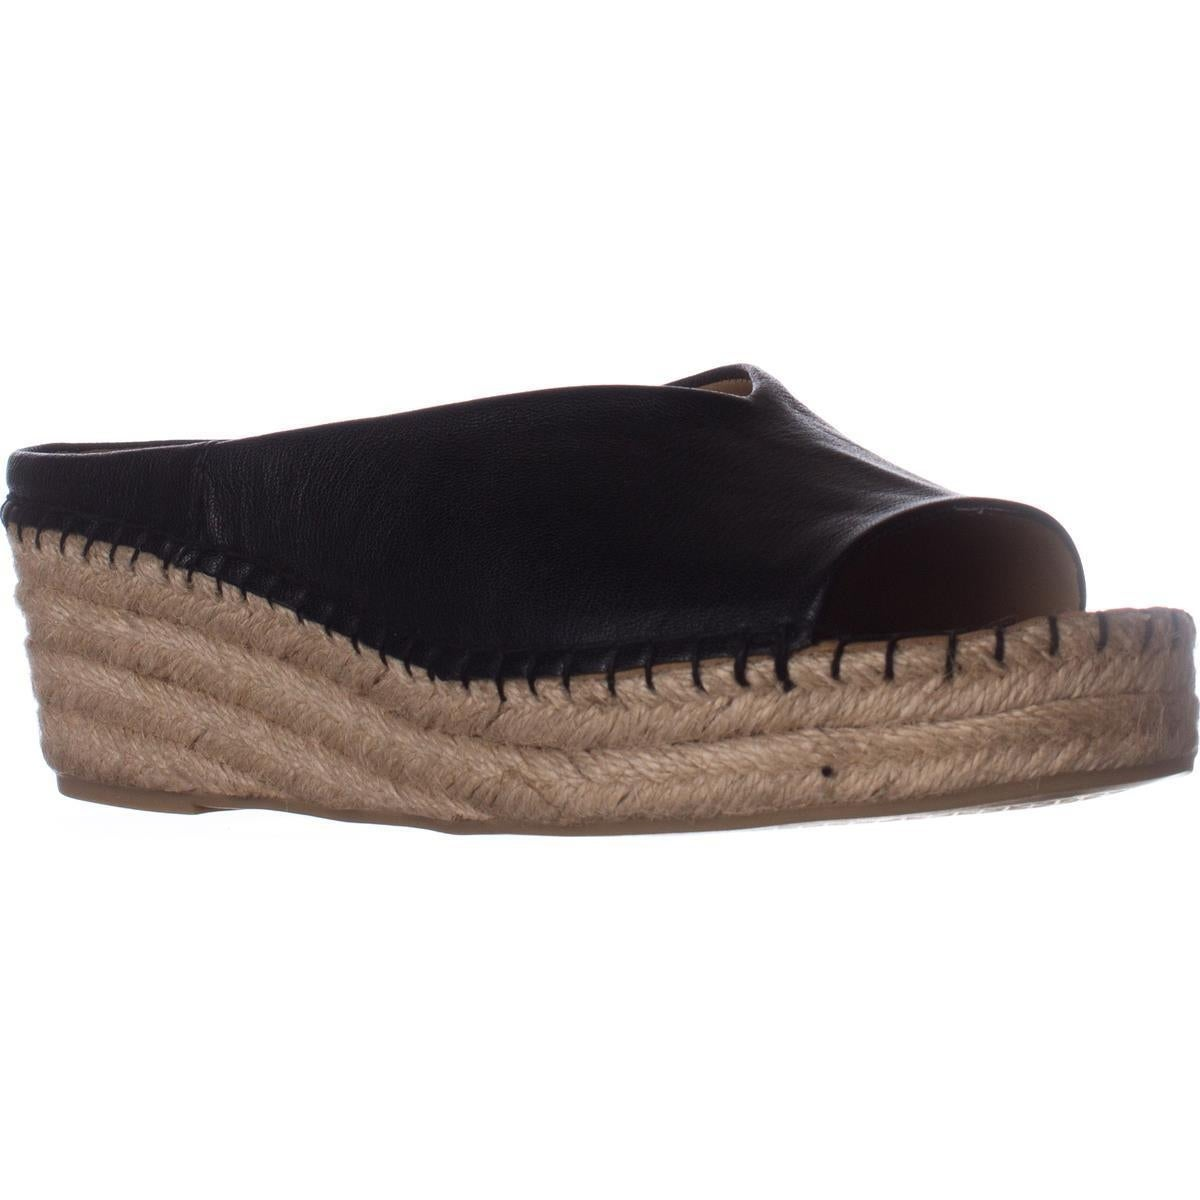 Shop Franco Sarto Pine Espadrille Slip On Wedge Mules Black Leather